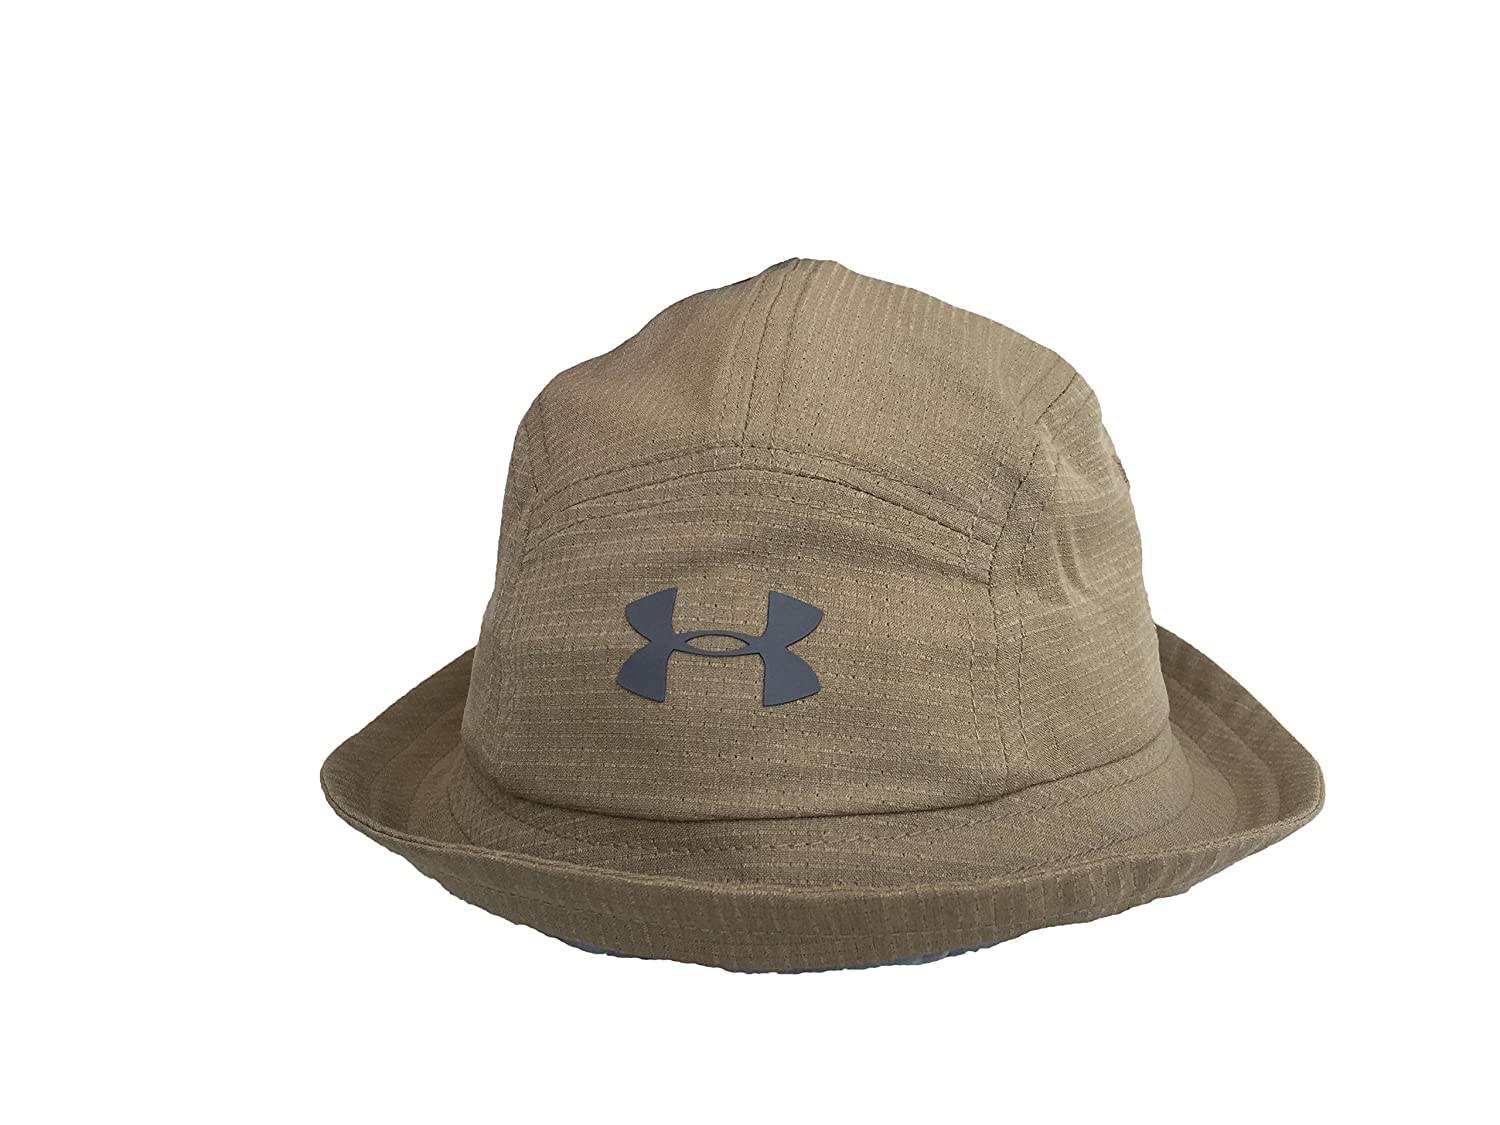 ed30860b23a9e1 Amazon.com: Under Armour Boys' Big Printed Warrior Bucket Hat: Sports &  Outdoors